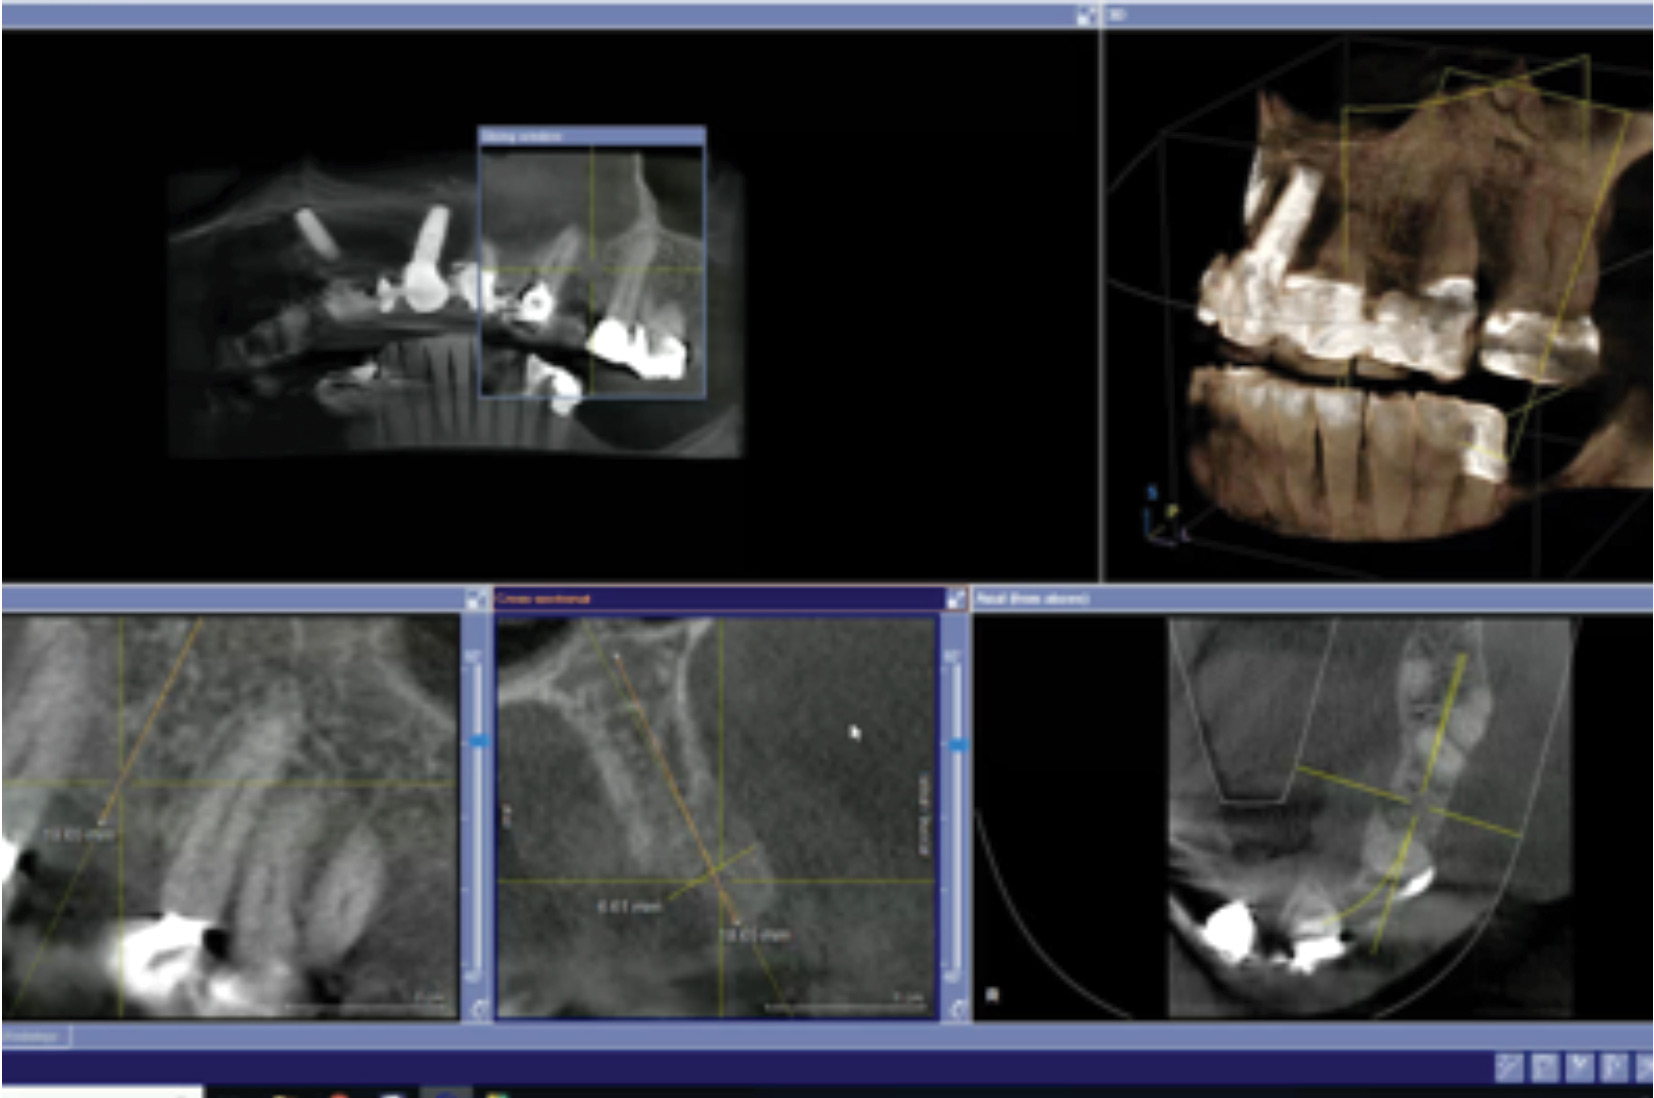 The post gbr CBCT.